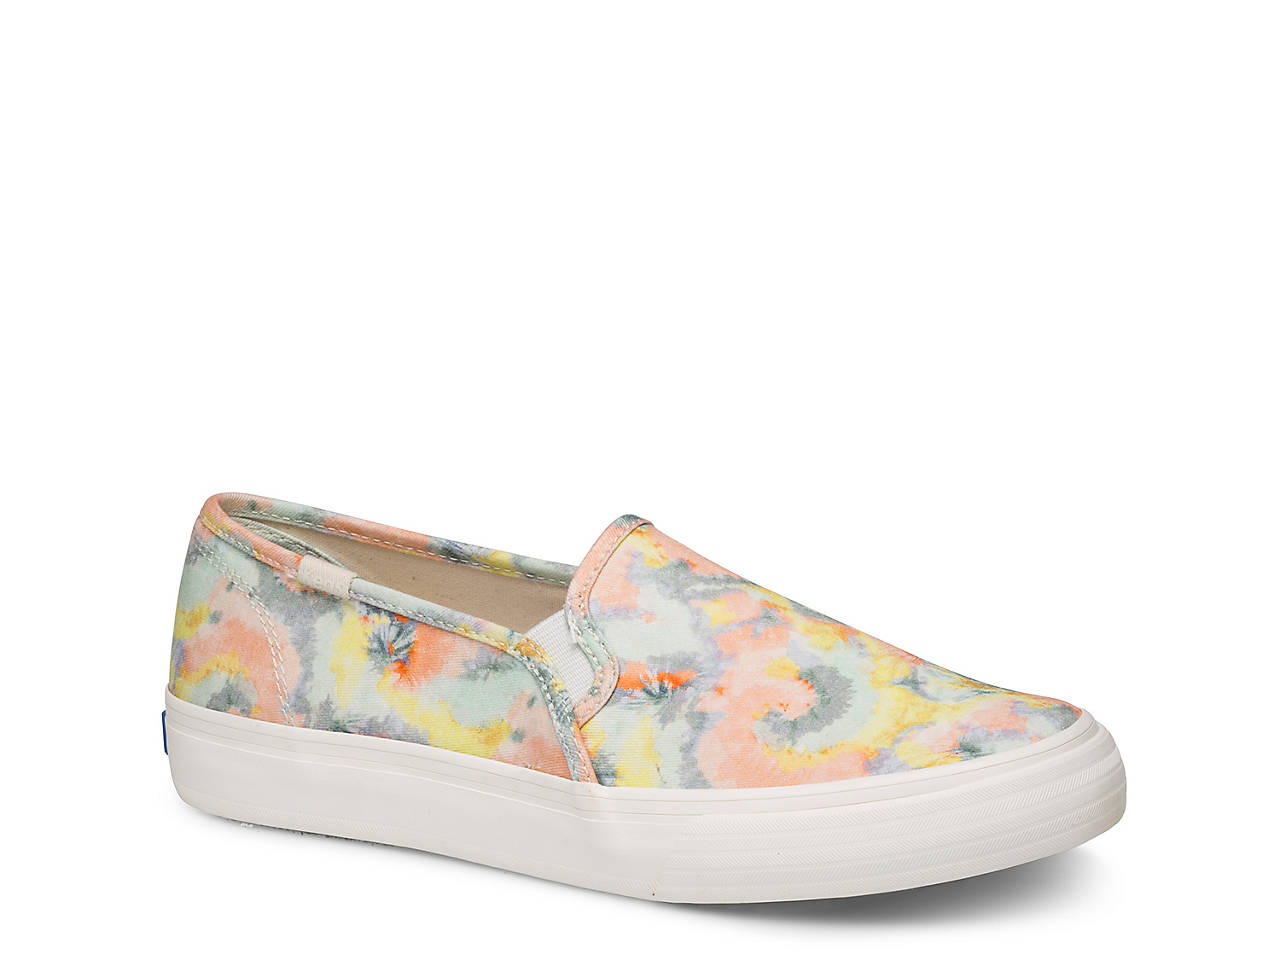 b539acb45 Keds Double Decker Tie Dye Slip-On Sneaker - Women's Women's Shoes | DSW